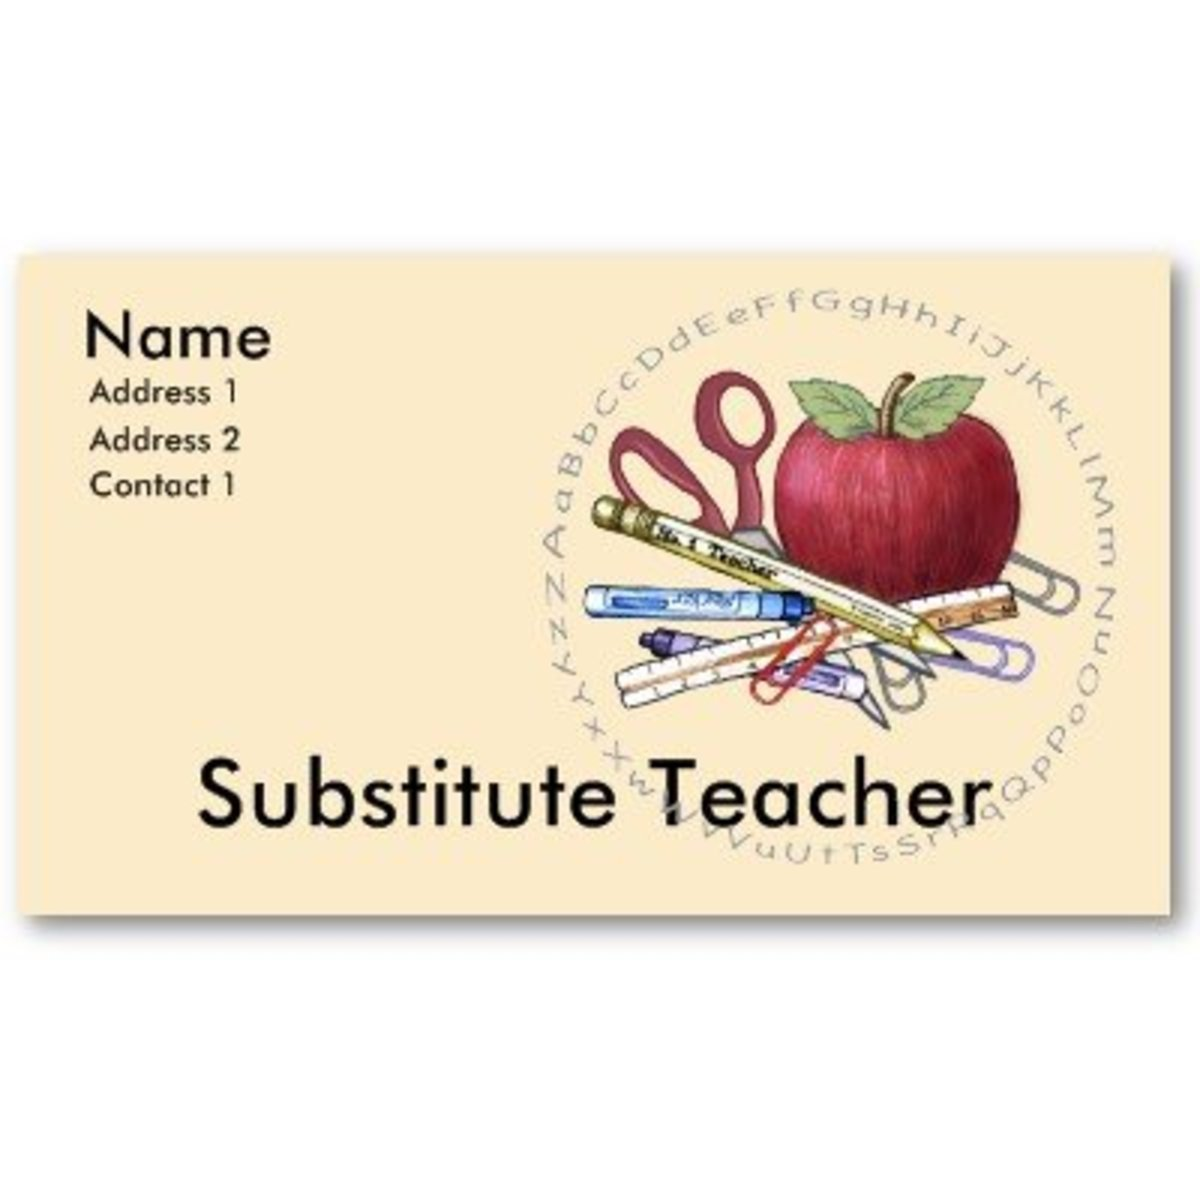 Learning How To Be A Good Substitute Teacher  Hubpages. Model Resume For Freshers Template. How To Write A Termination Letter To An Employer Pics. Free Action Plan Template Excel. Microsoft Office Words Free Download Template. Lumber Takeoff Spreadsheet. Pro Capital Punishment Essay Template. What Is An Electronic Signature Template. Personal Budget Spreadsheet Free